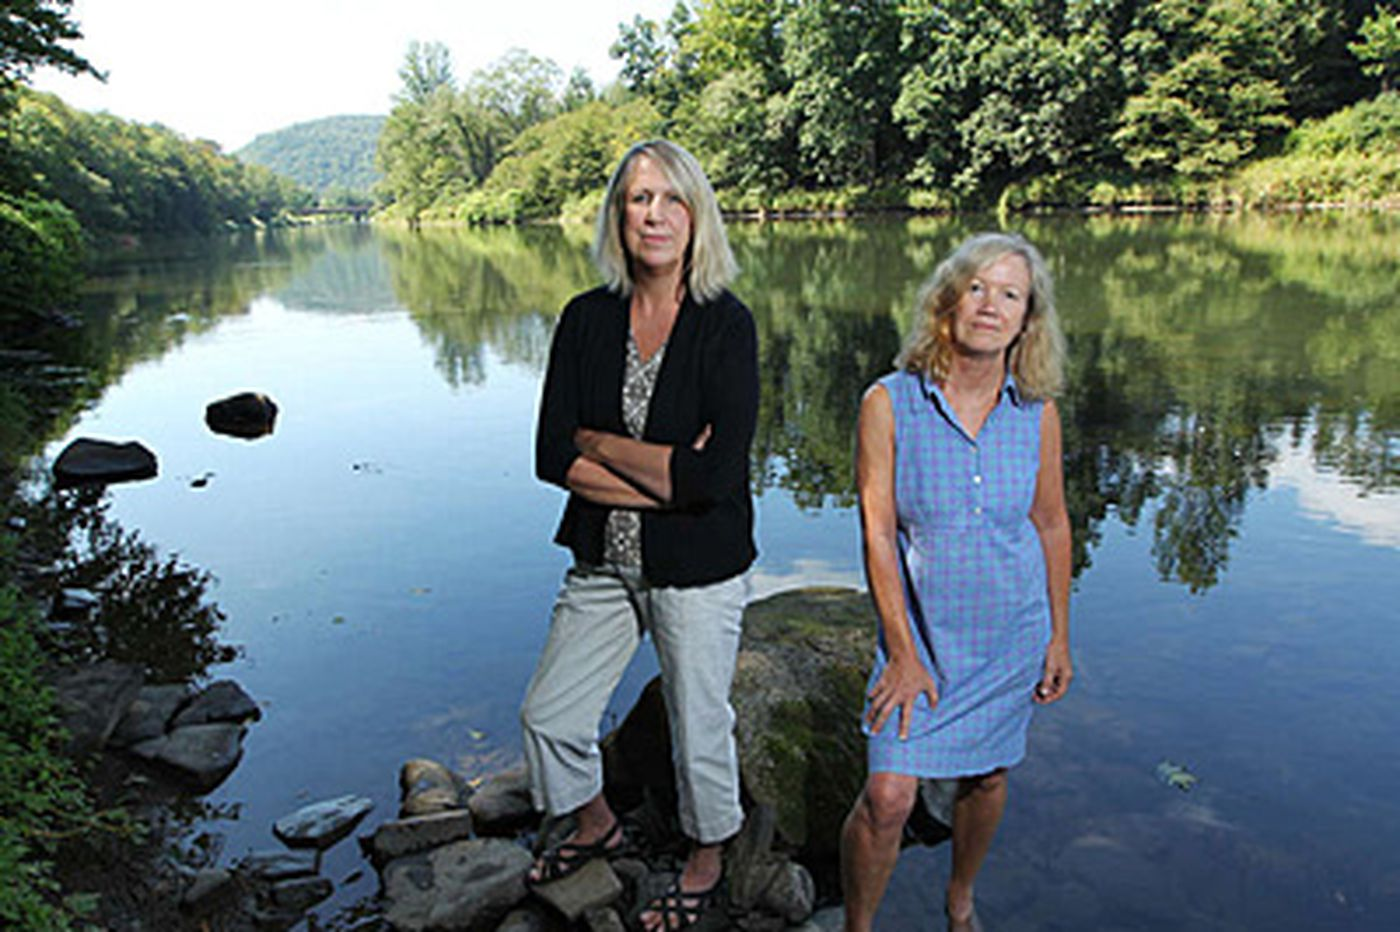 N.Y. to rule on fracking, which could affect the Delaware River Water Basin